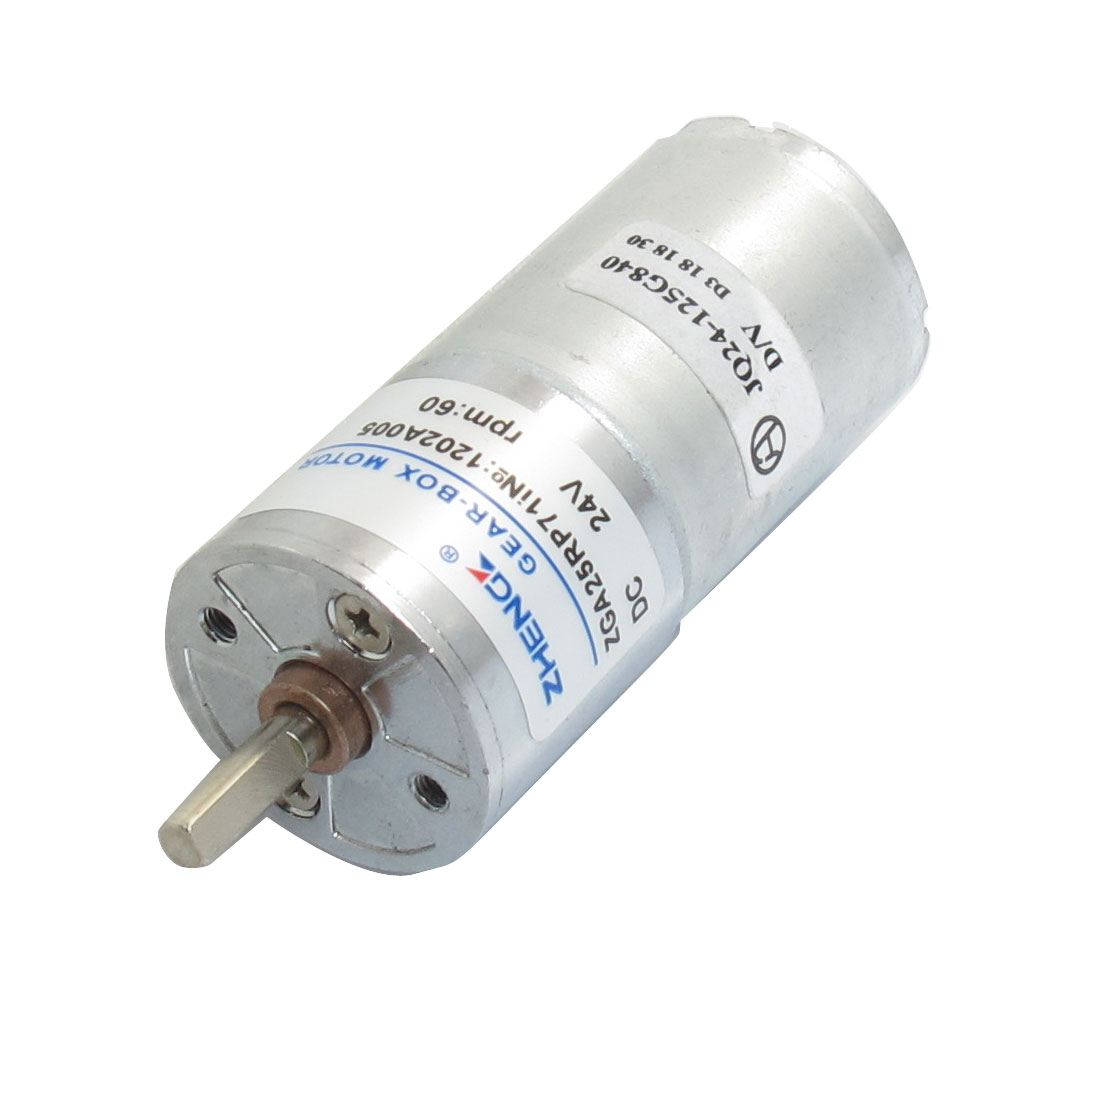 DC 24V 60RPM Speed Reducing Power Geared Motor 25mm x 53mm